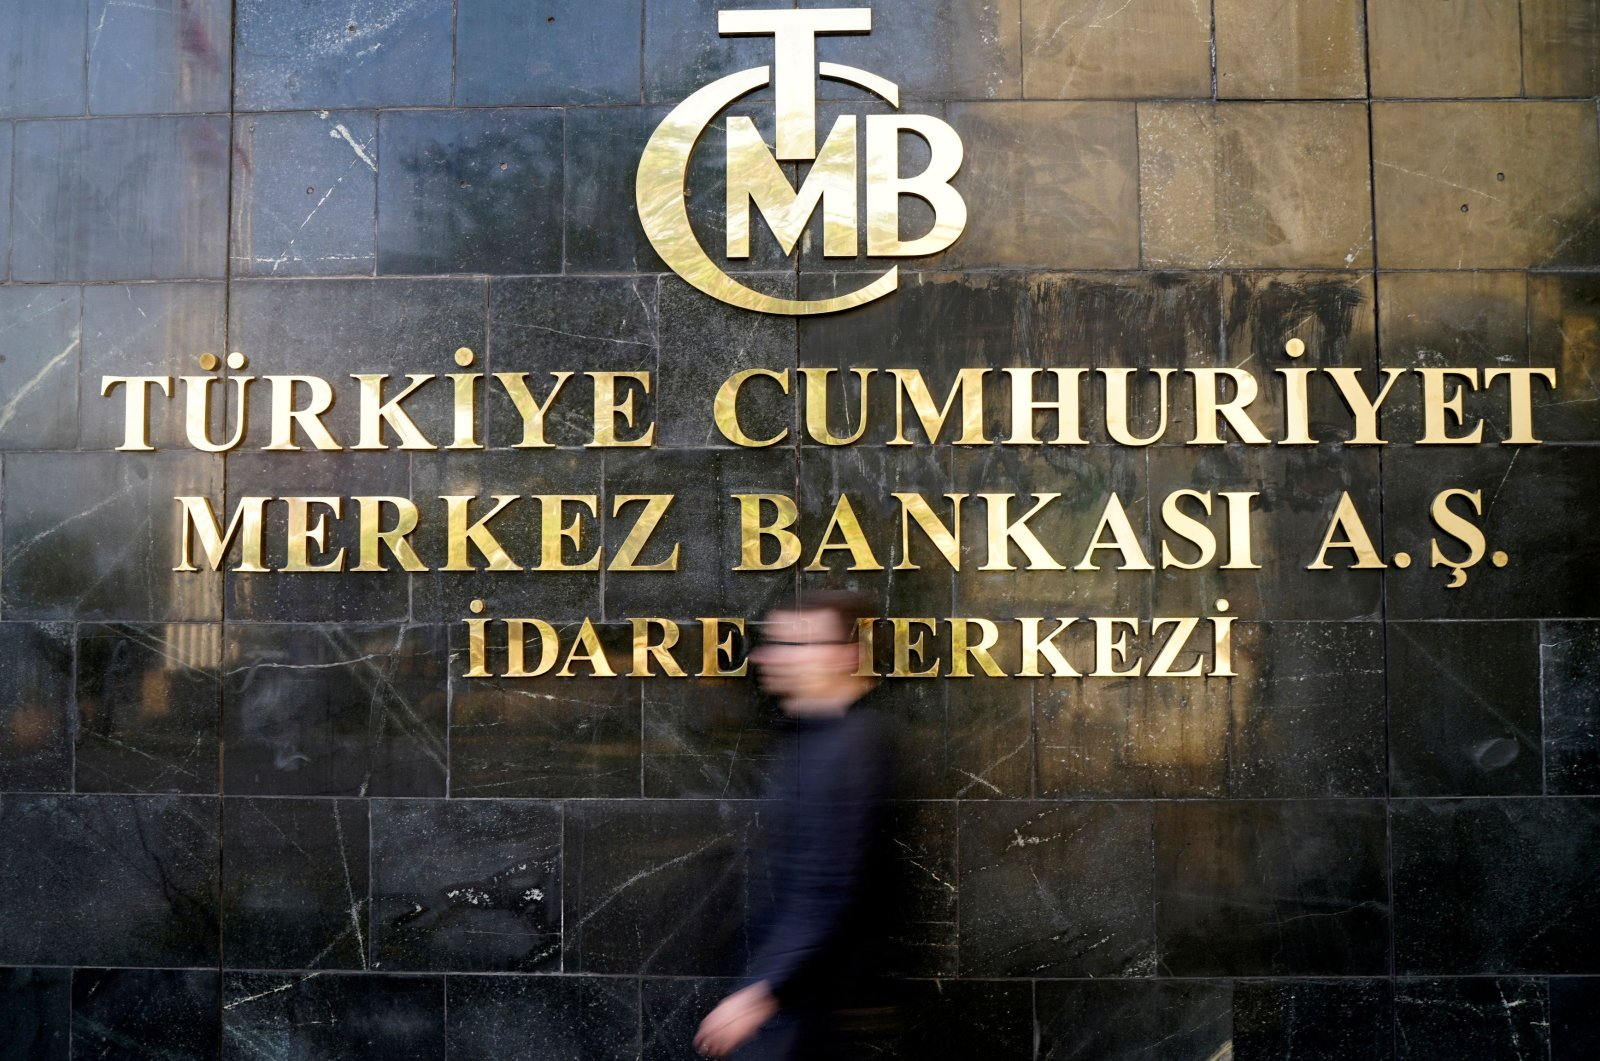 A man leaves the Central Bank of the Republic of Turkey (CBRT) headquarters in Ankara, Turkey, April 19, 2015. (Reuters Photo)